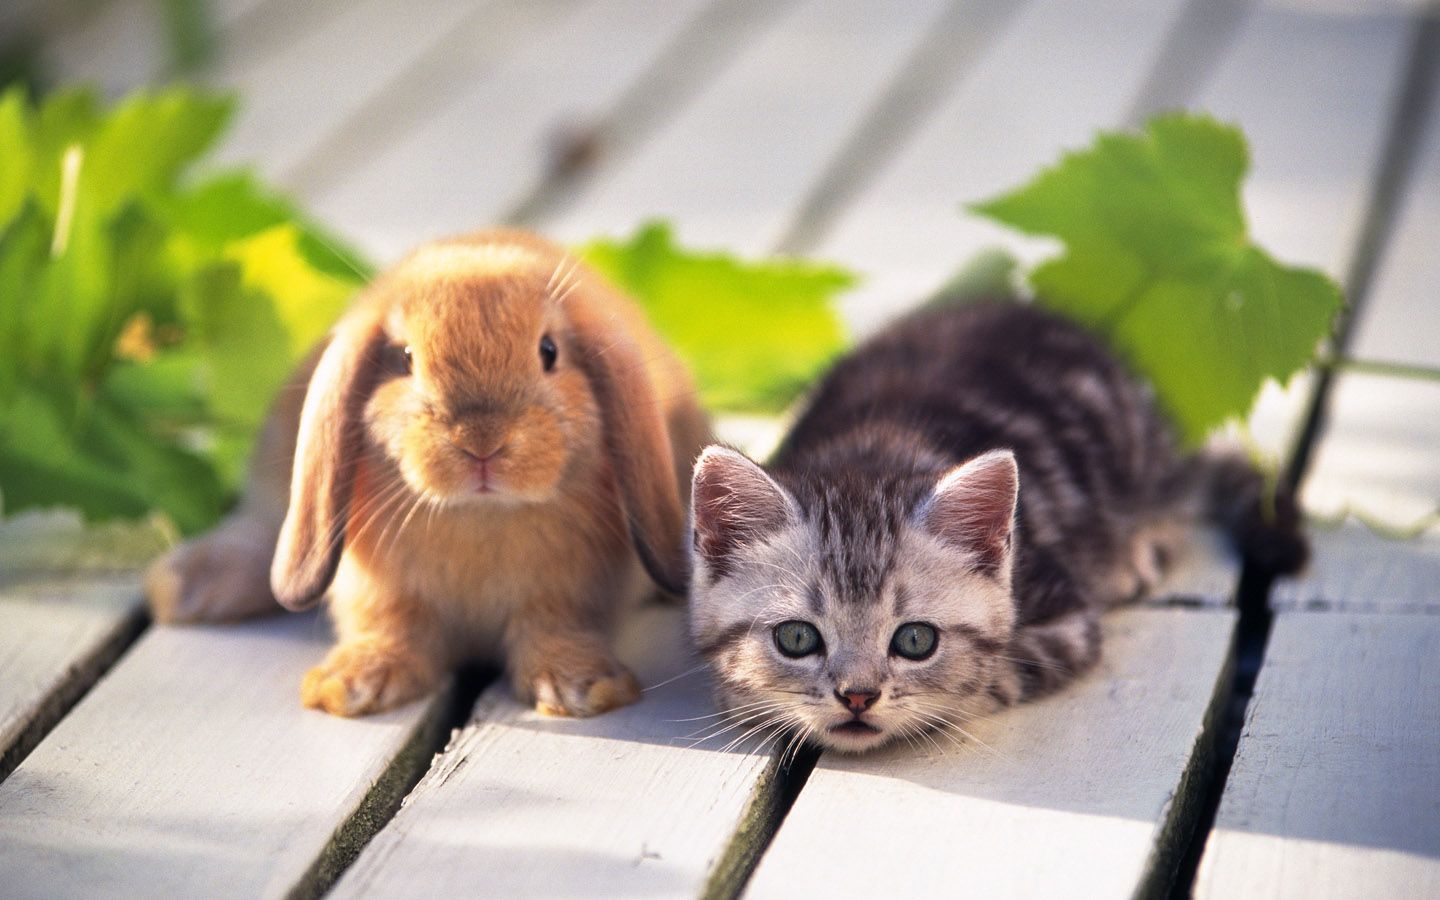 Rabbit And Cat Sweet Hd Wallappers For Desktop Hd Wallpaper